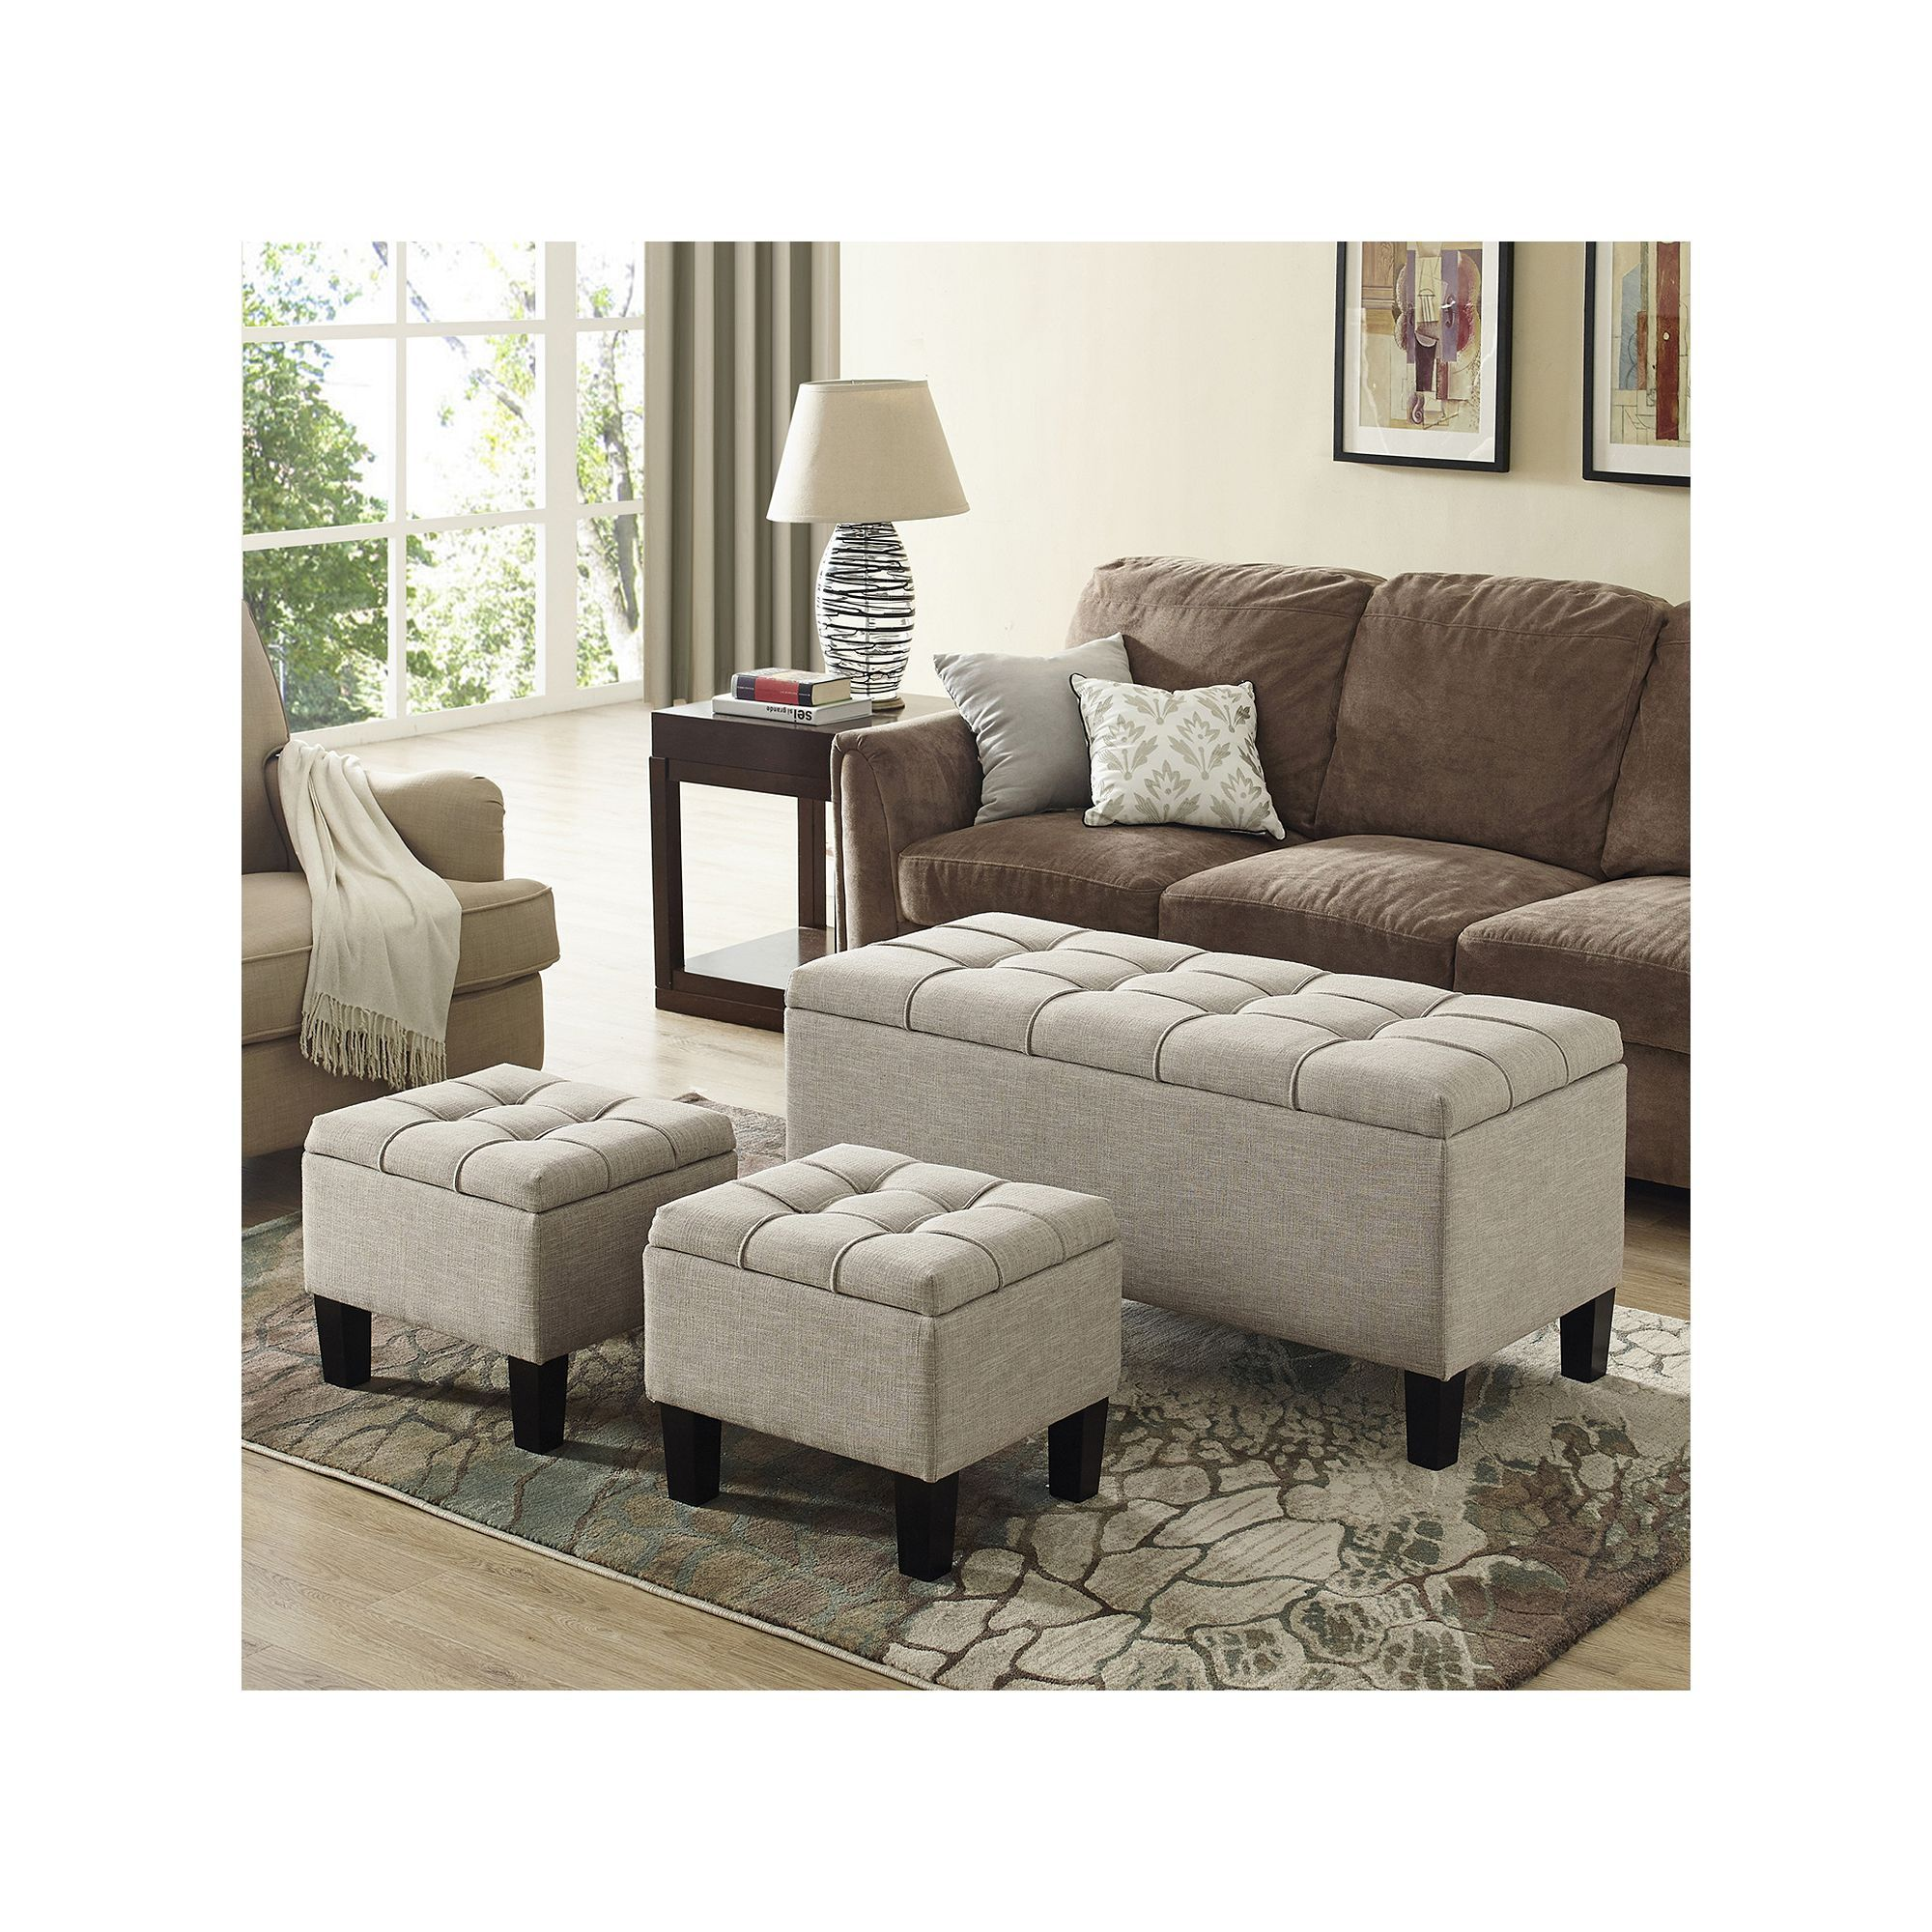 Fabulous Simply Home Dover Storage Ottoman Bench 3 Piece Set Squirreltailoven Fun Painted Chair Ideas Images Squirreltailovenorg